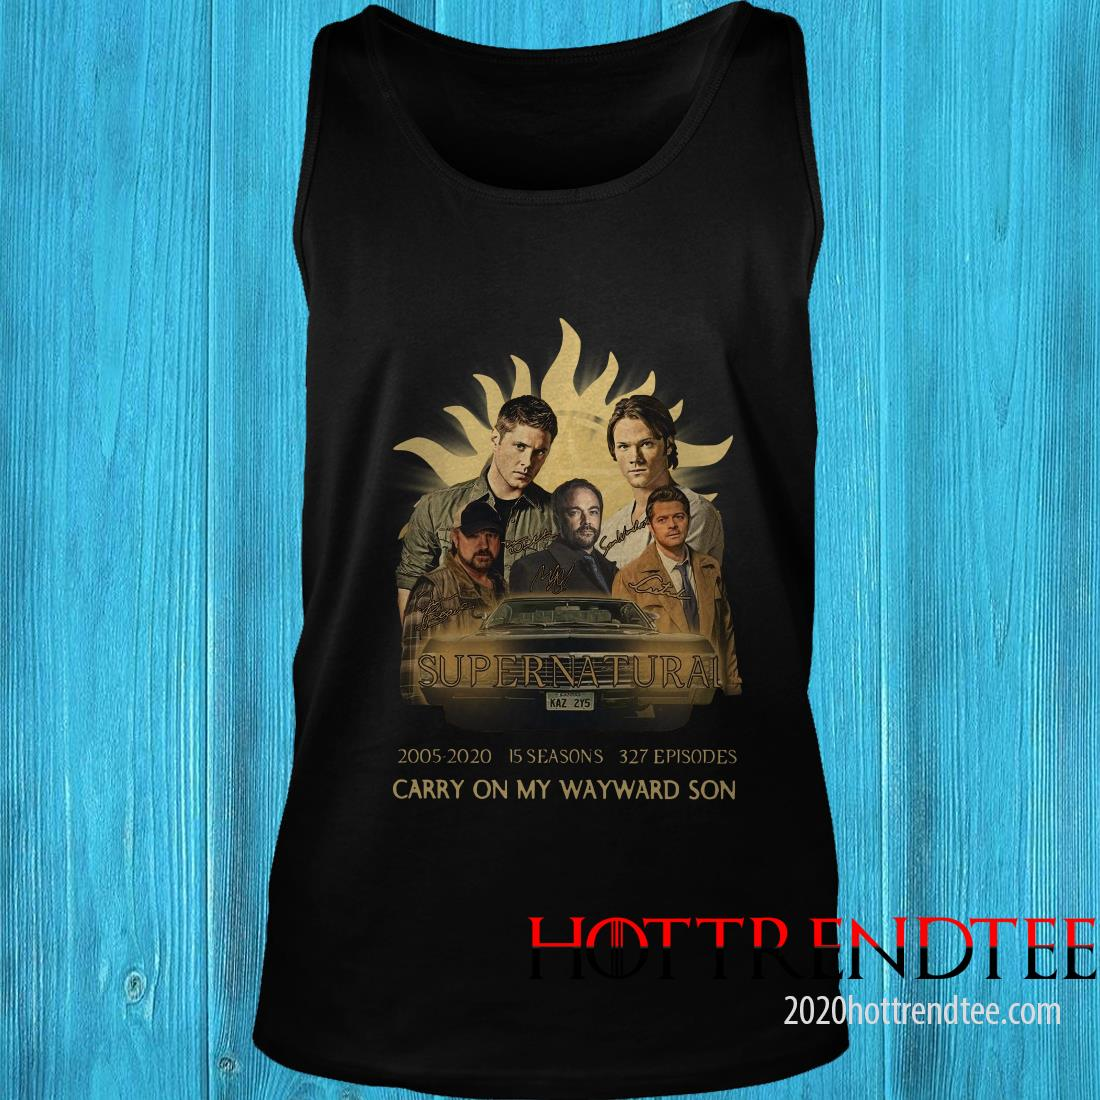 Supernatural 2005-2020 15 Seasons 327 Episodes Carry On My Wayward Son Tanktop